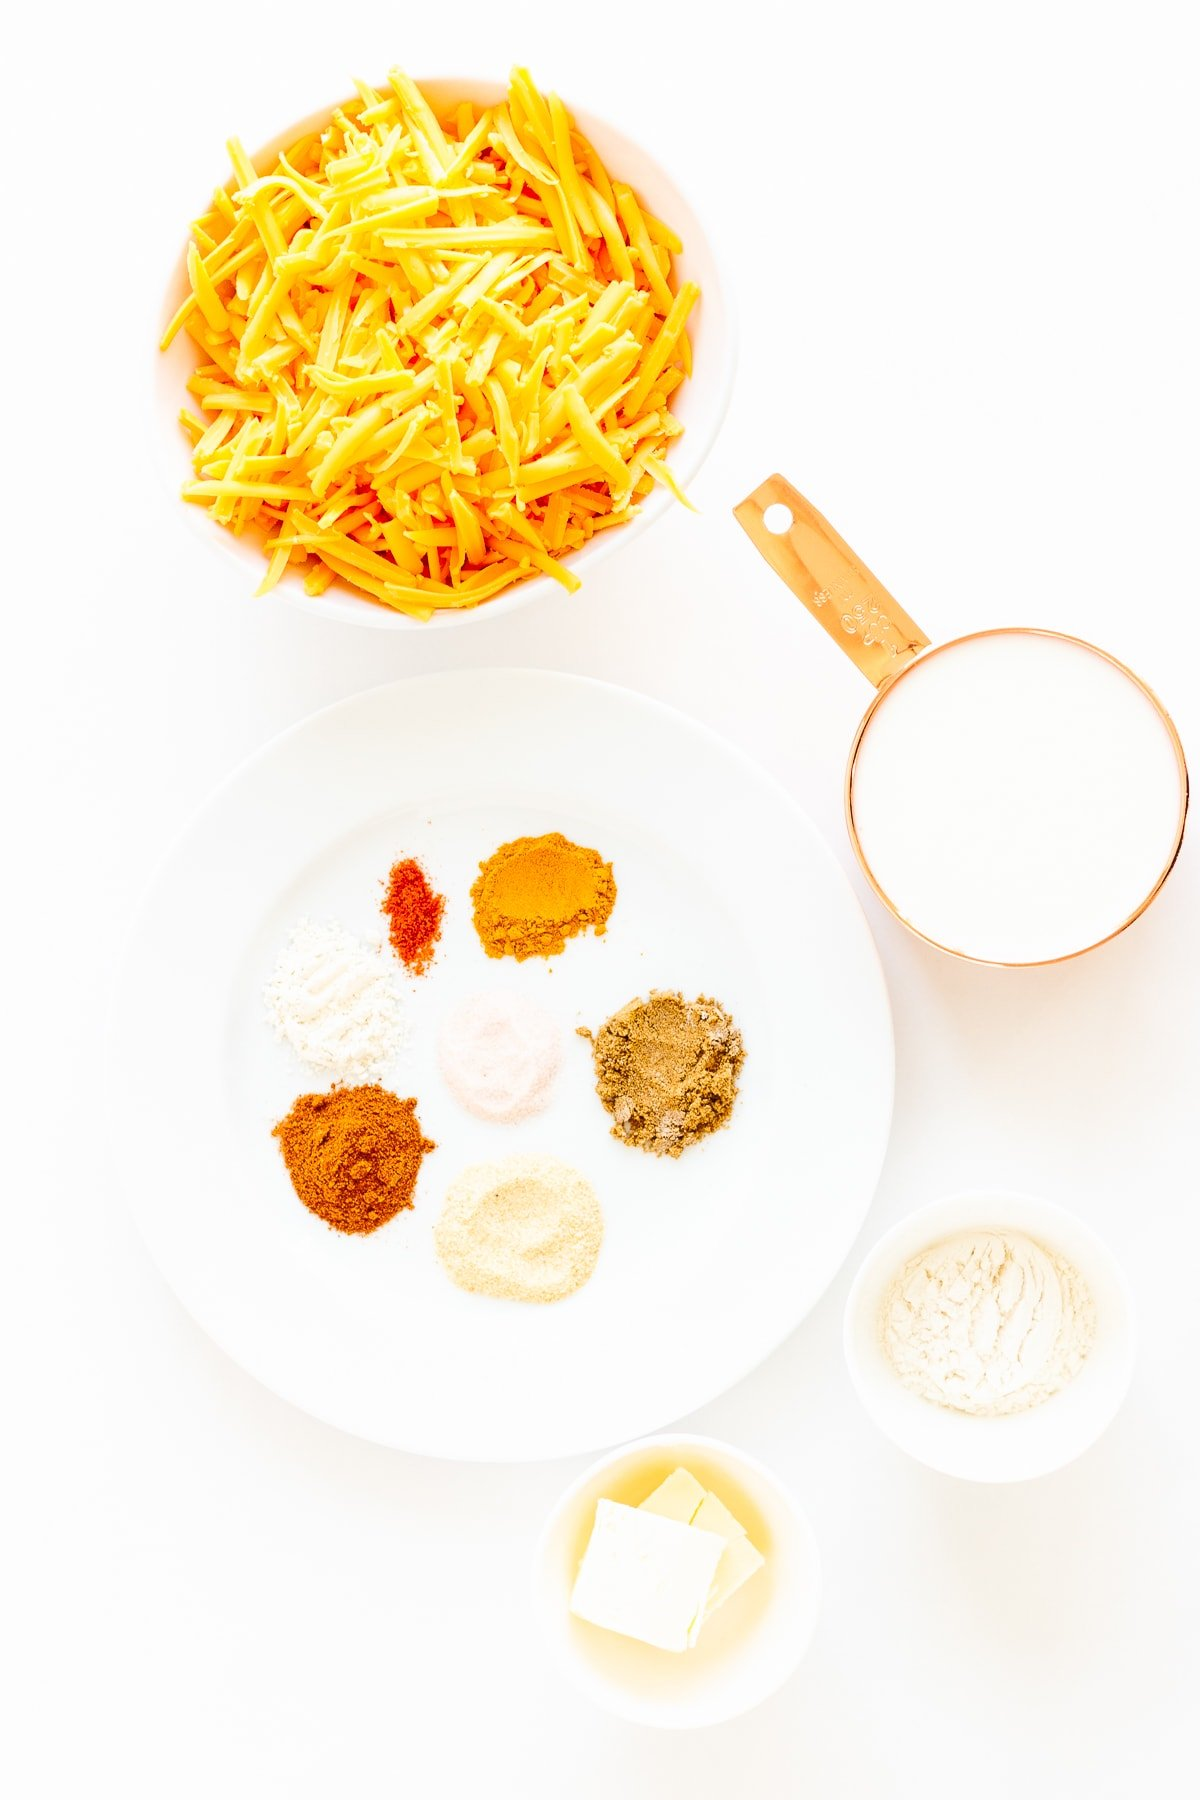 All the ingredients needed to make homemade nacho cheese sauce laid out on a white surface.